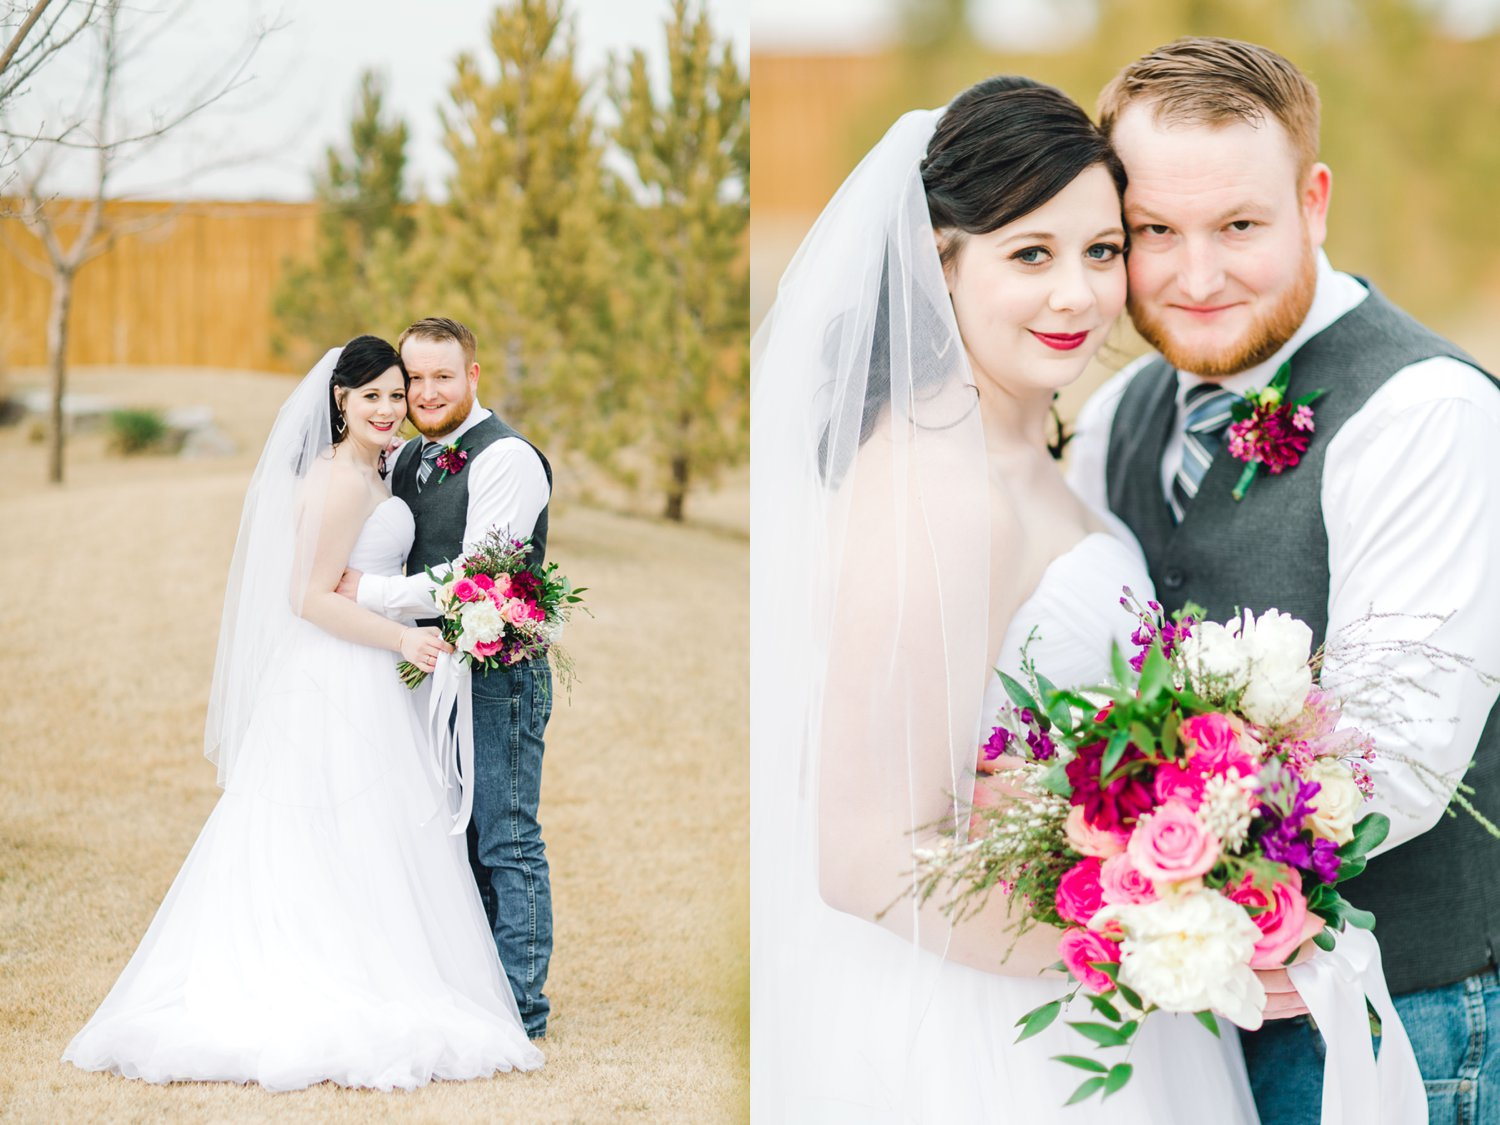 Autumn-Oaks-Events-Morgan-Andy-Lane-Wedding-Lubbock-Photography__0033.jpg